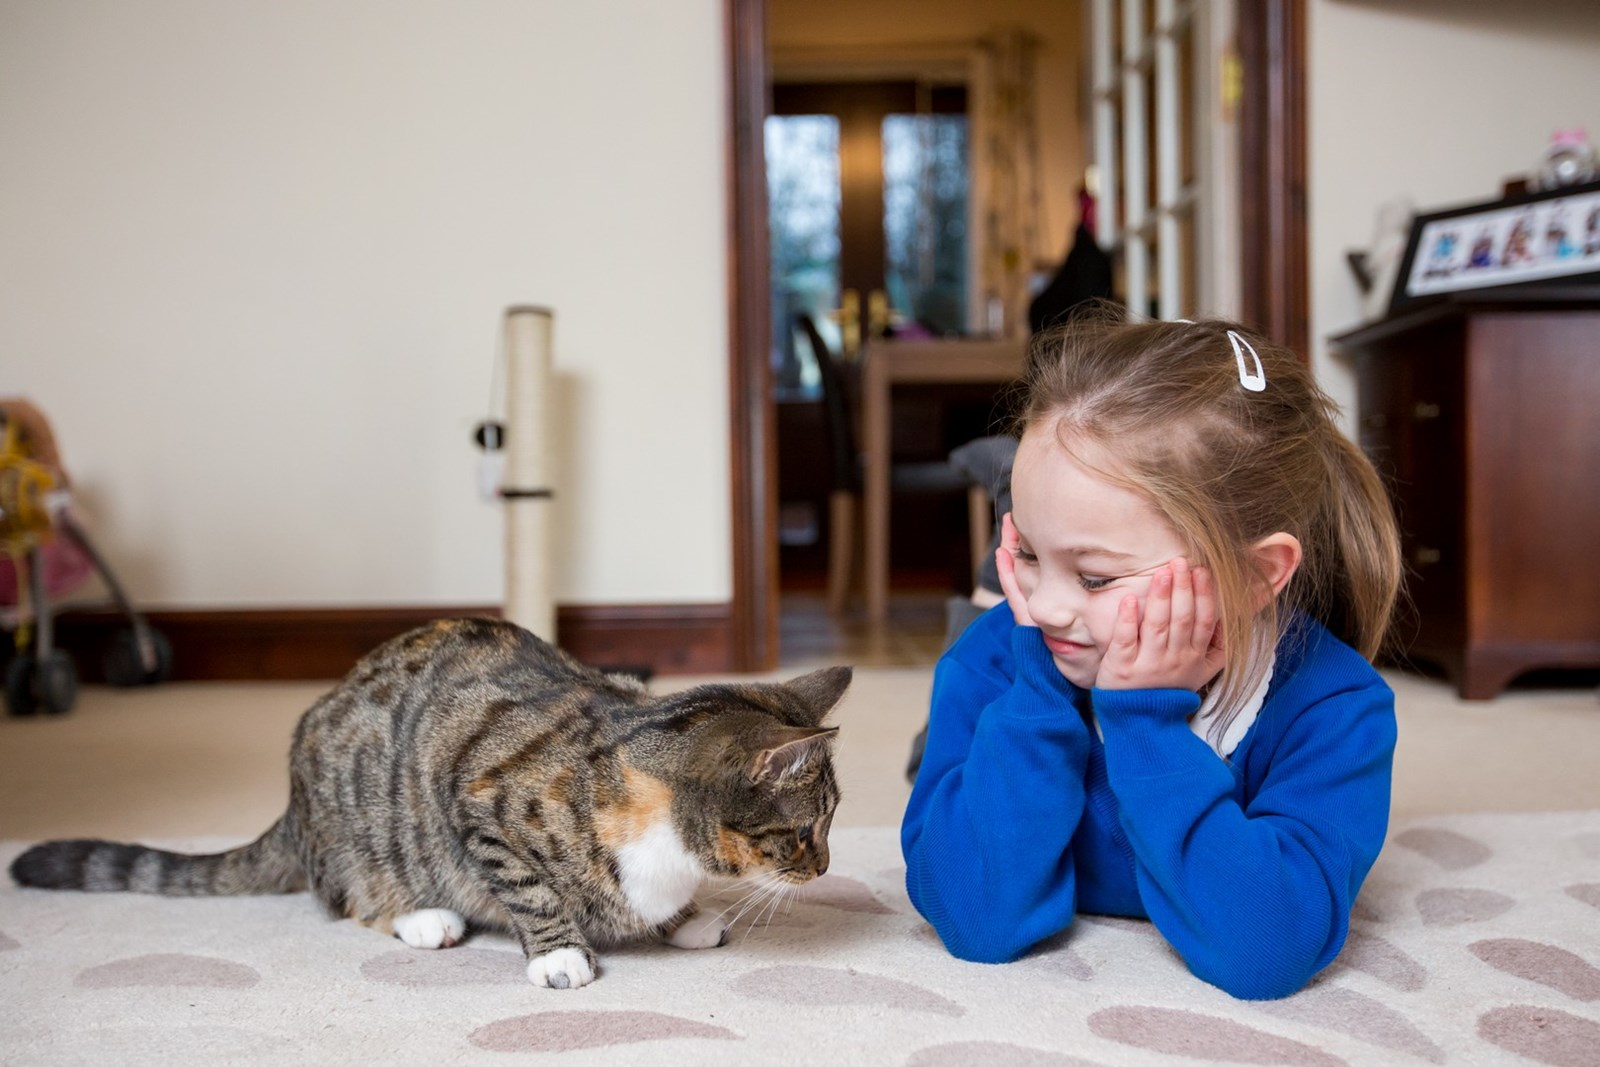 girl with blue jumper lying next to sitting cat